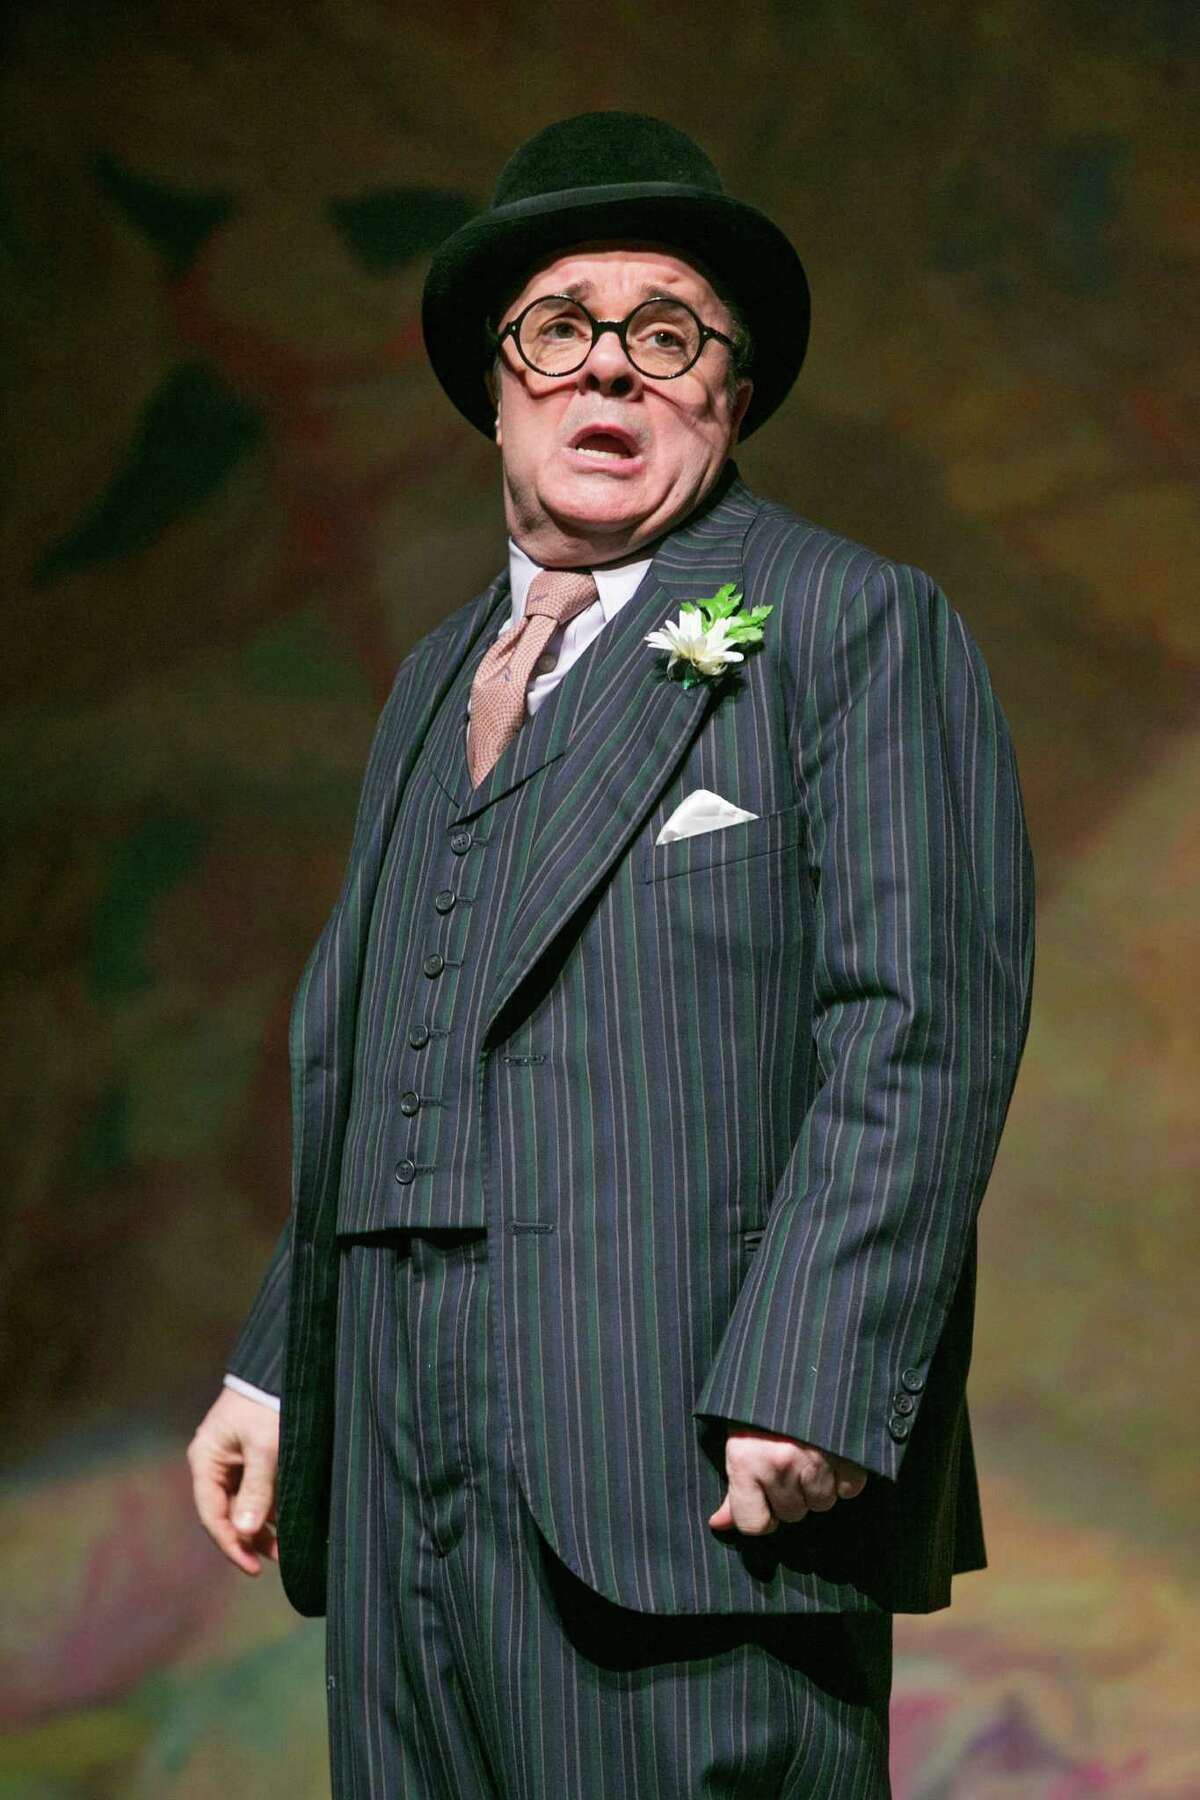 Nathan Lane in the play